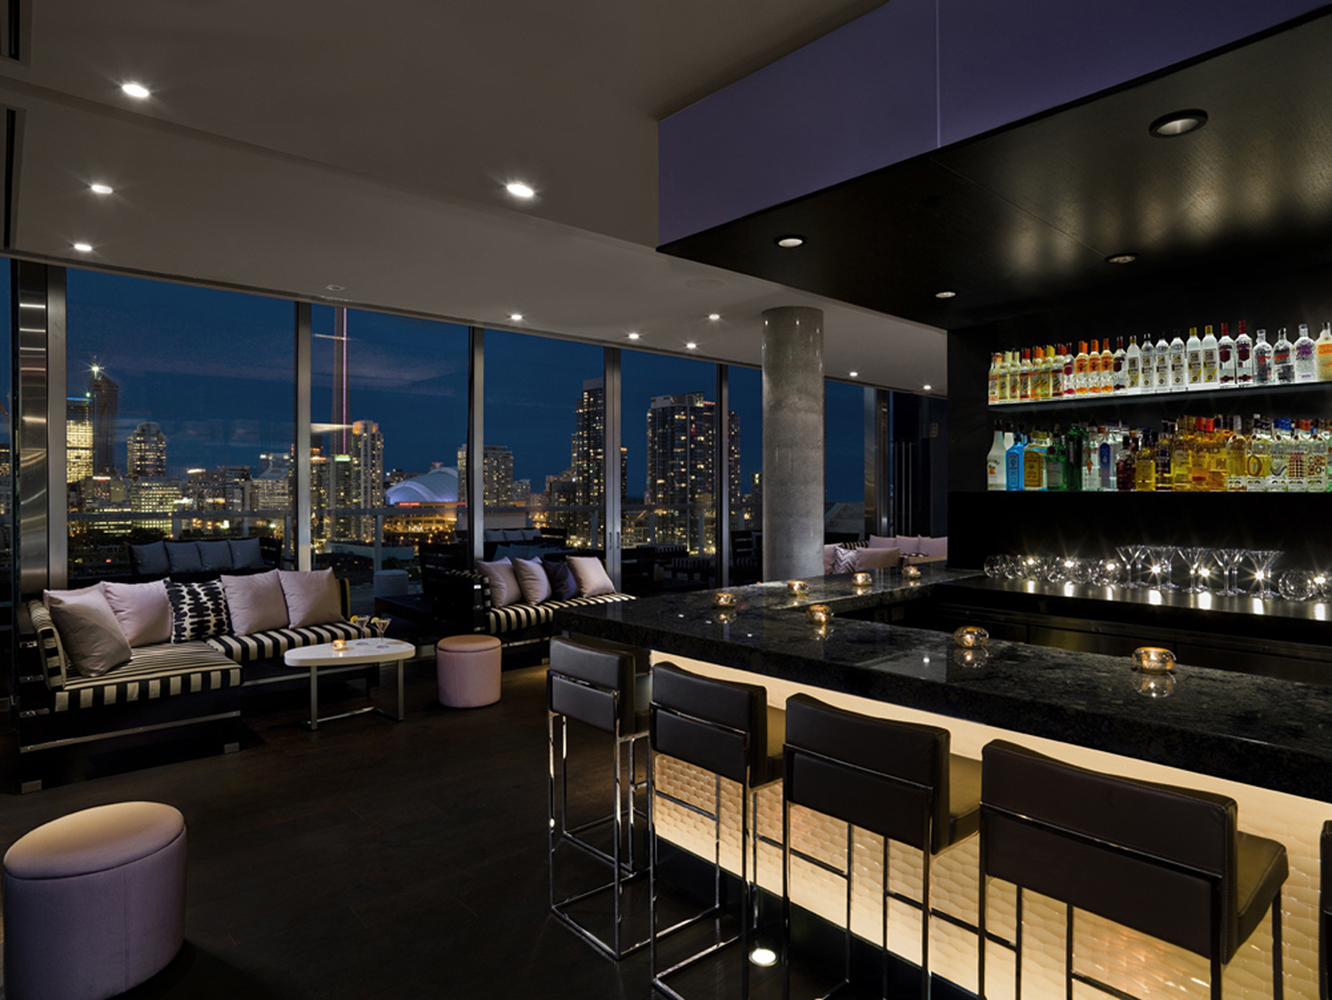 Thompson Hotel Rooftop Ii By Iv Designii By Iv Design